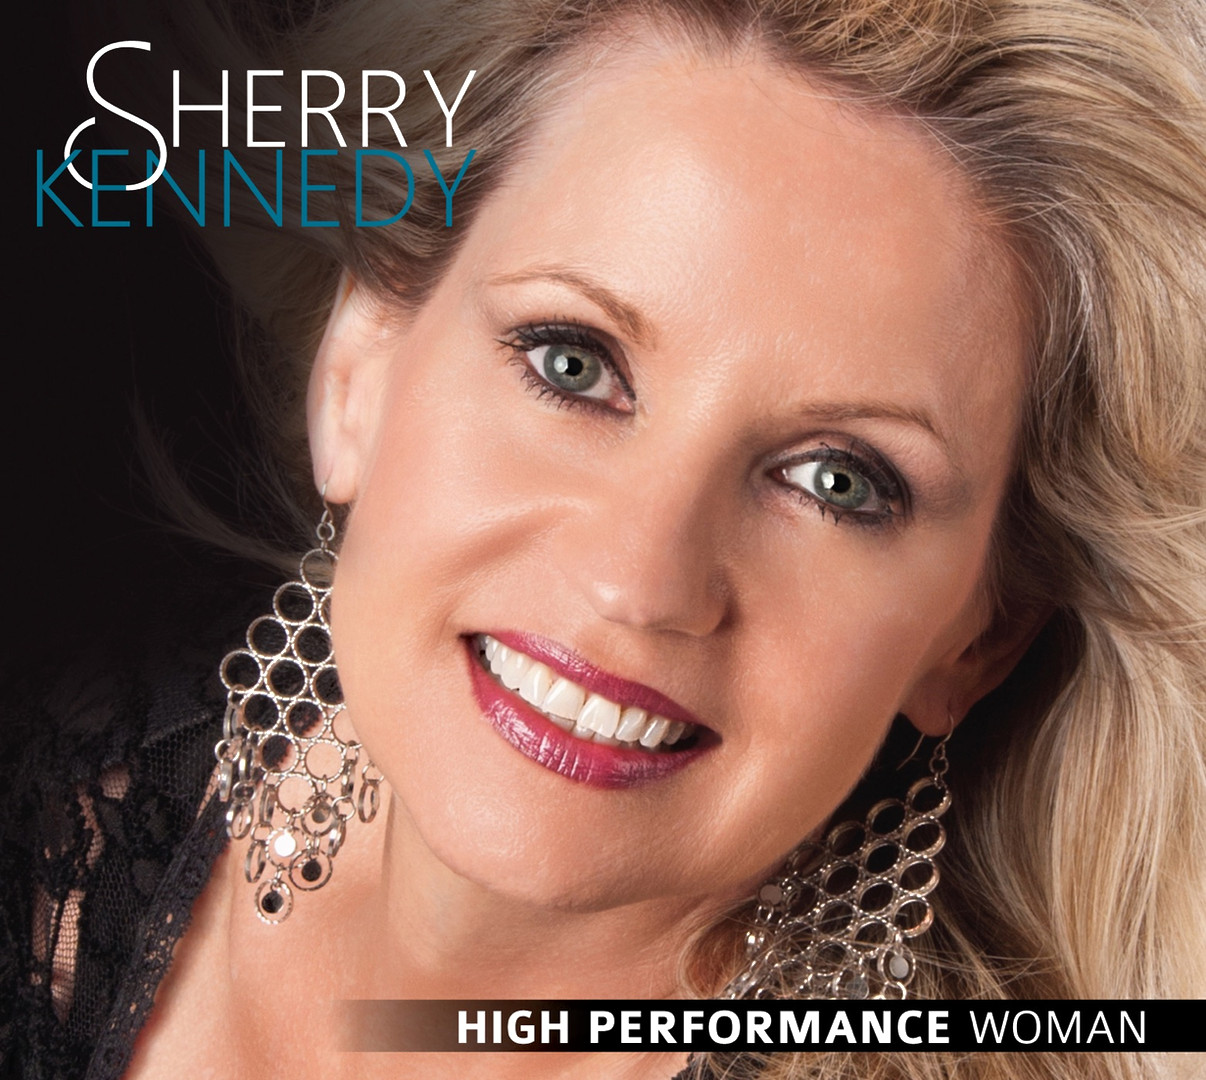 Sherry Kennedy - High Performance Woman